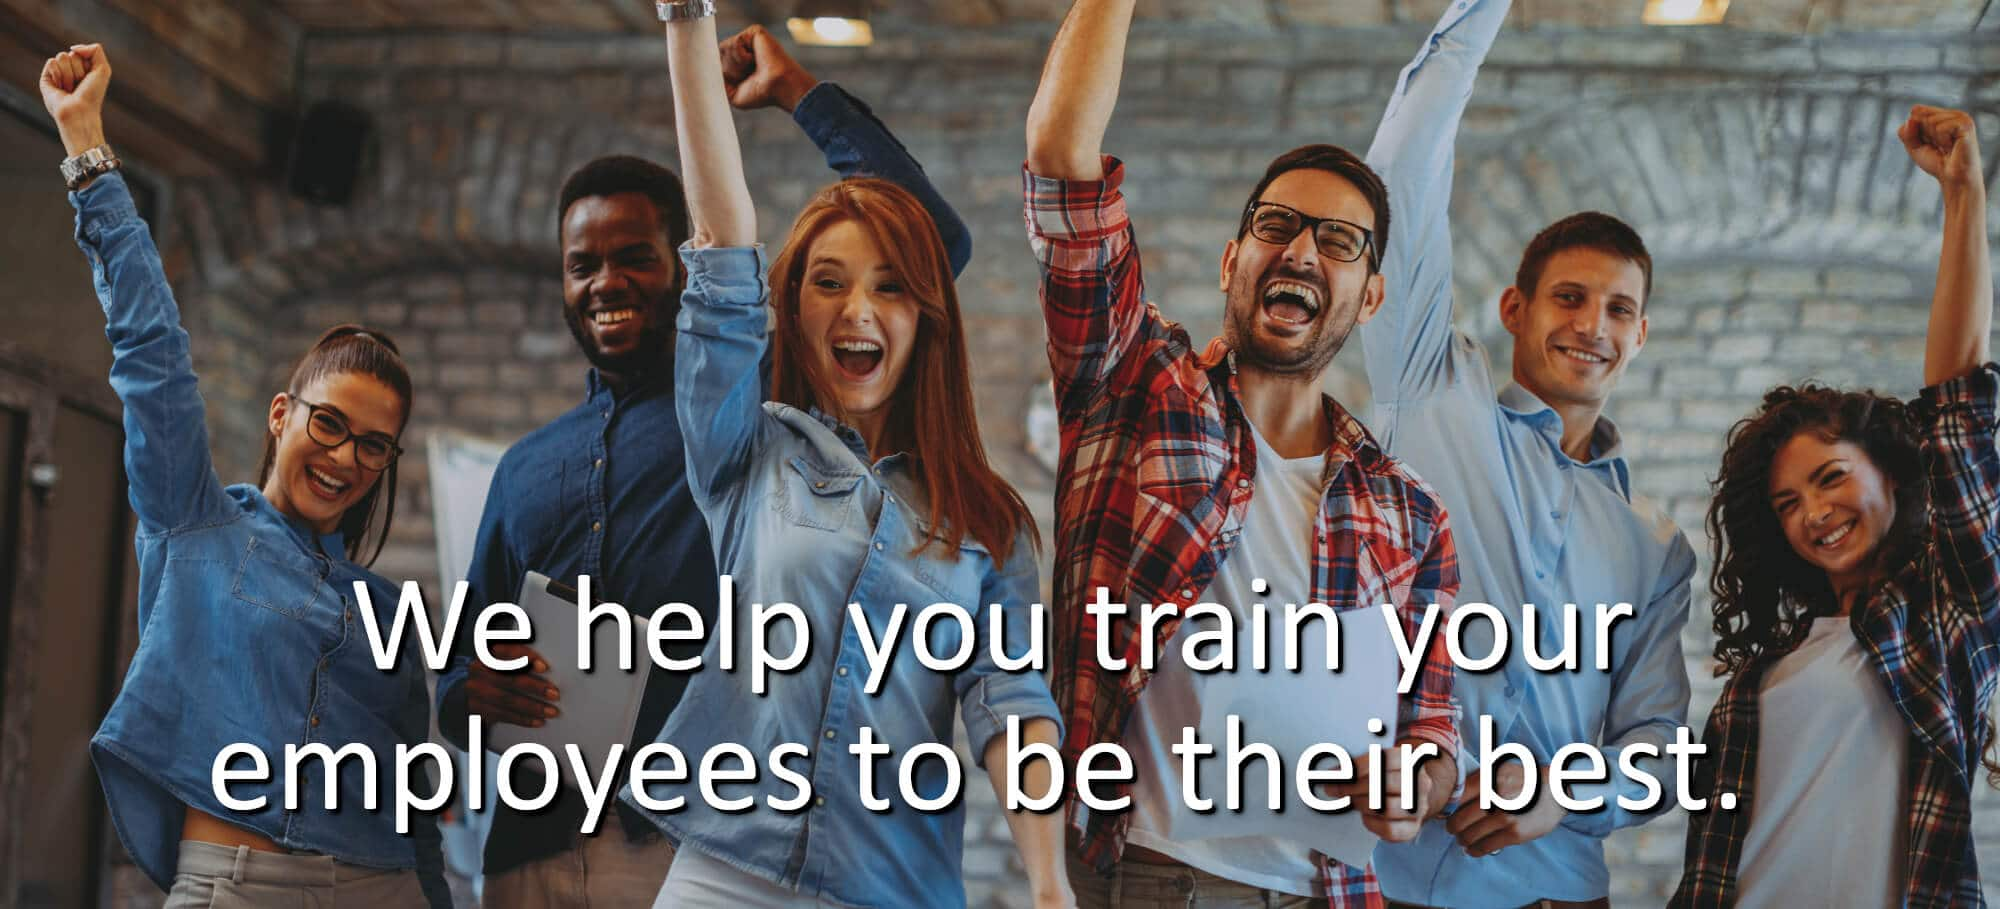 we help you train your employees to be their best - group of employees happy and excited